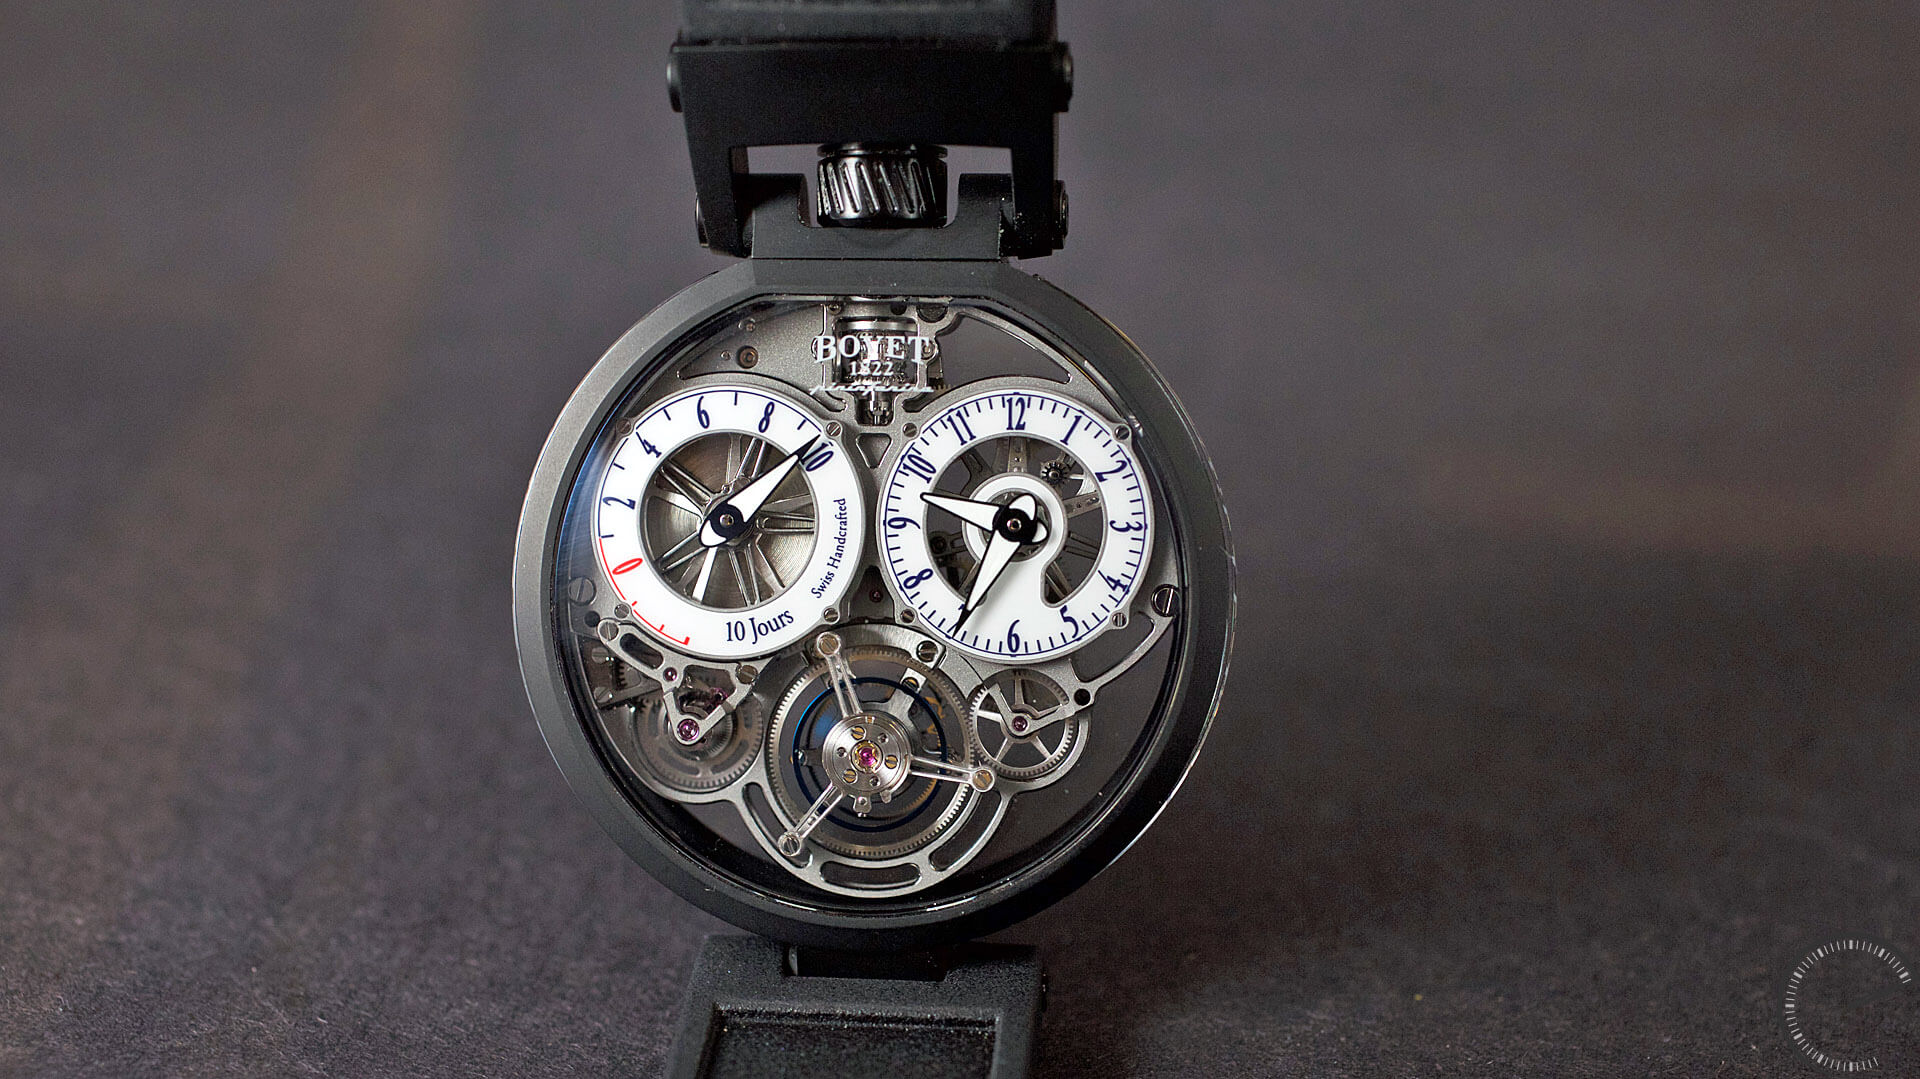 Bovet_Flying_Tourbillon_Ottanta_Sei_Case - ESCAPEMENT magazine - watch review by Angus Davies